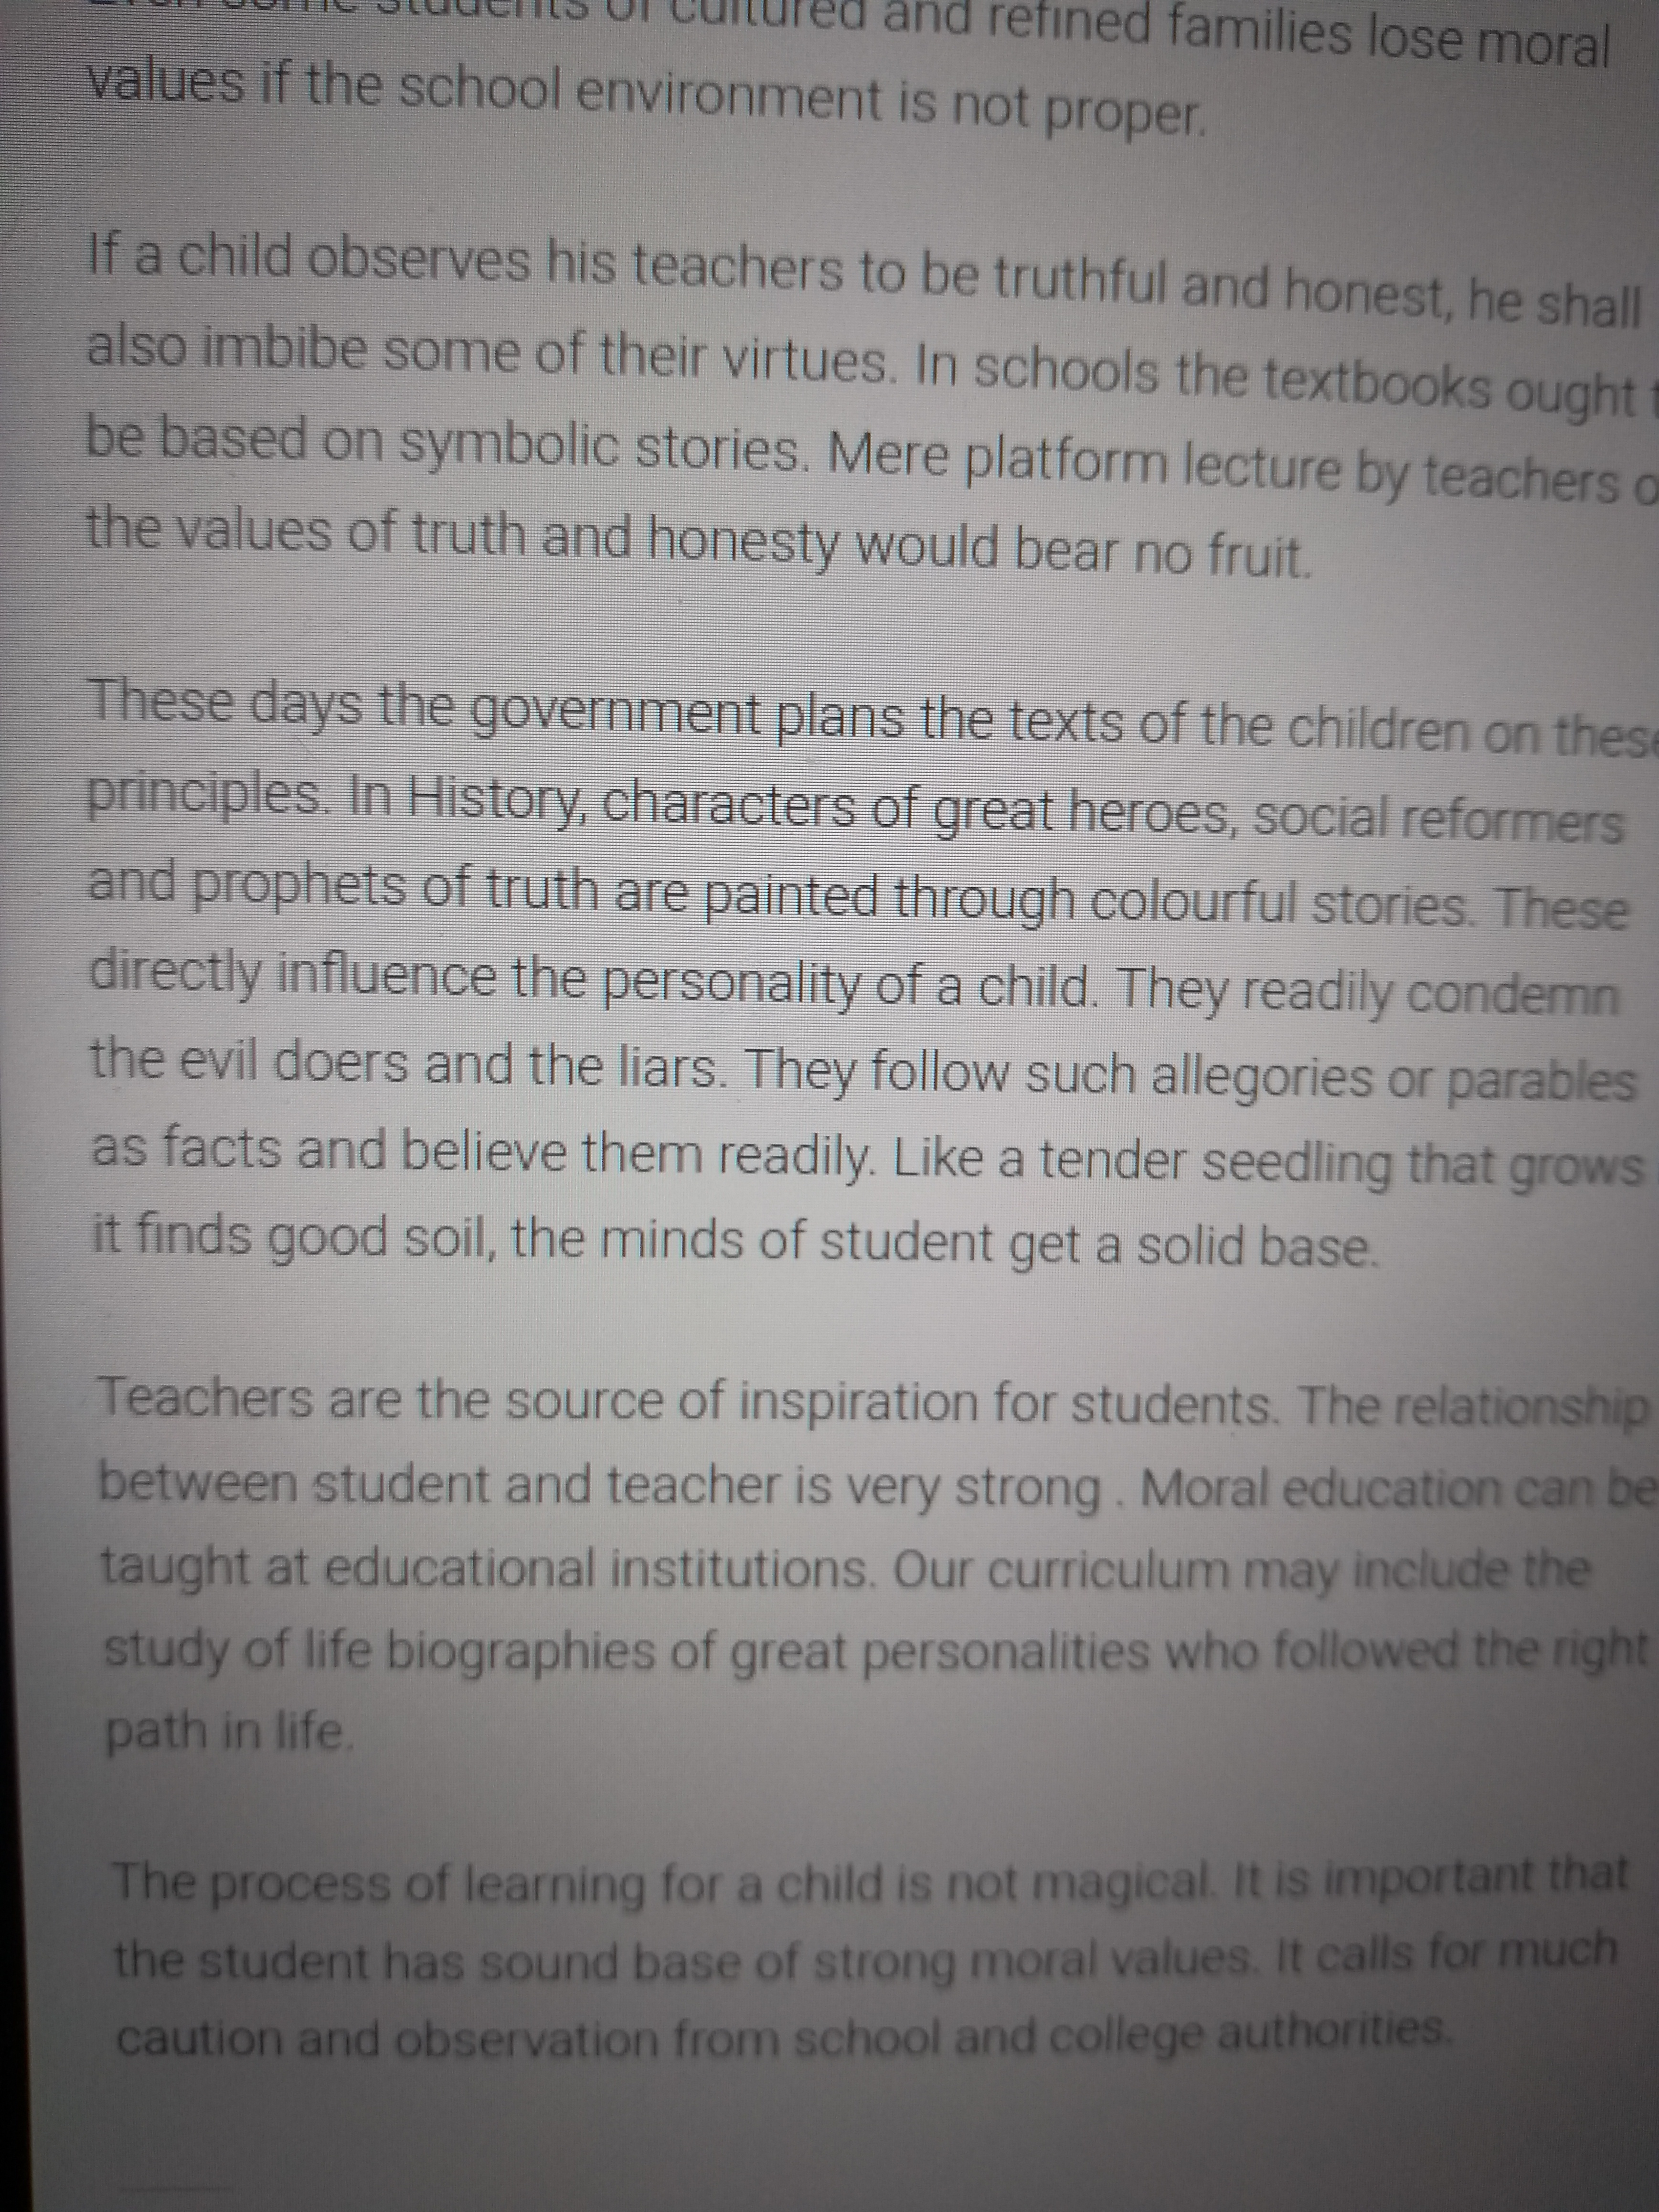 essay on importance of moral education wikipedia